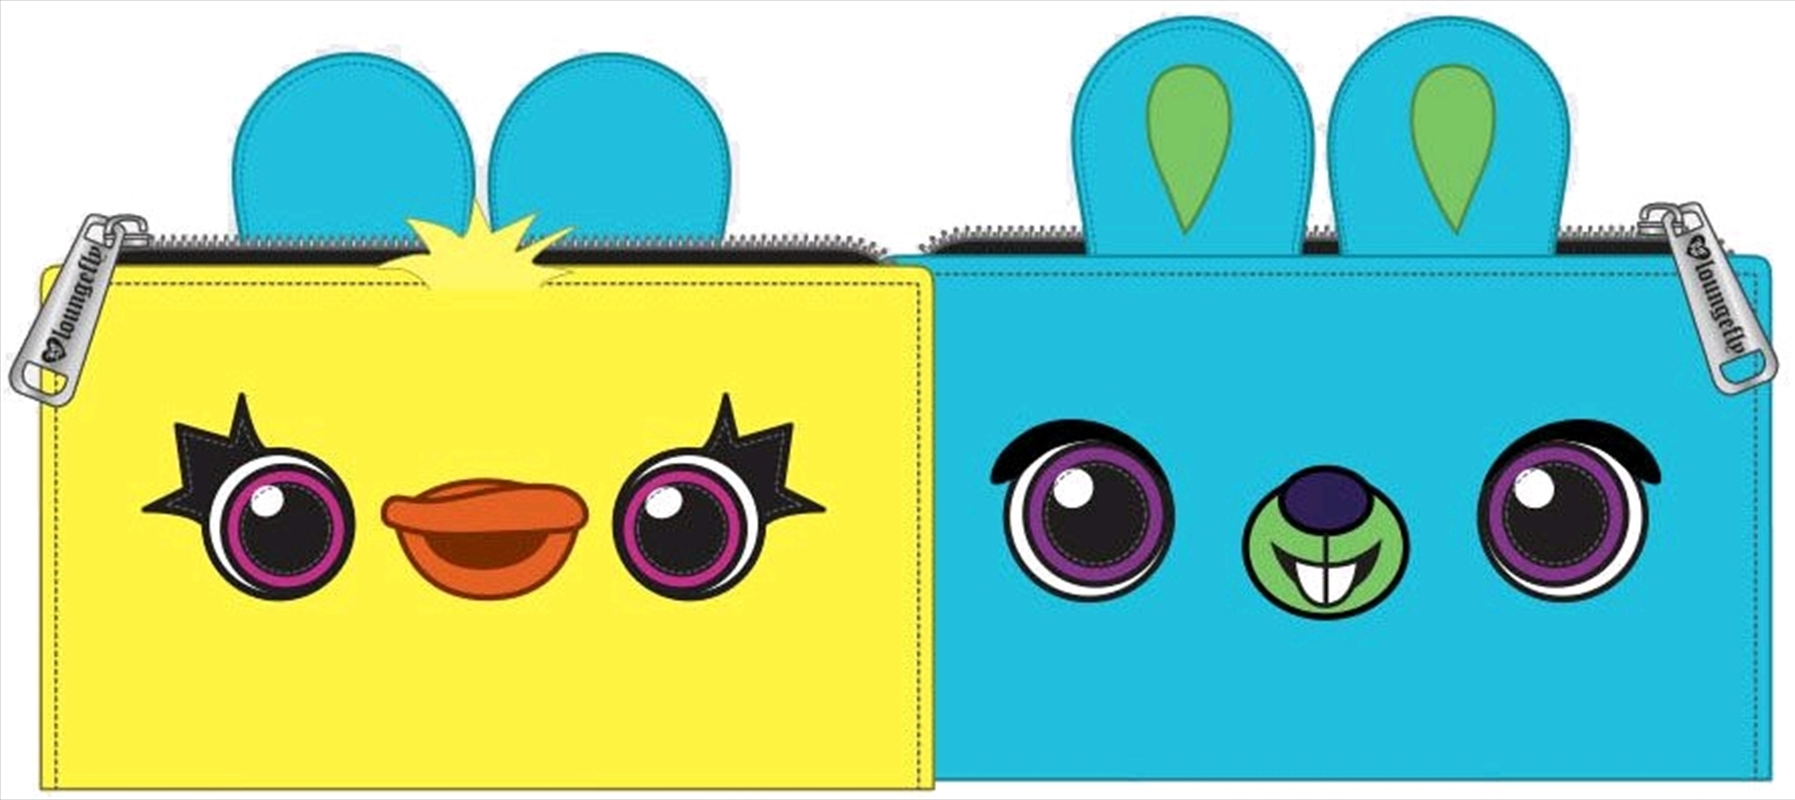 Toy Story 4 - Ducky / Bunny Wallet   Apparel